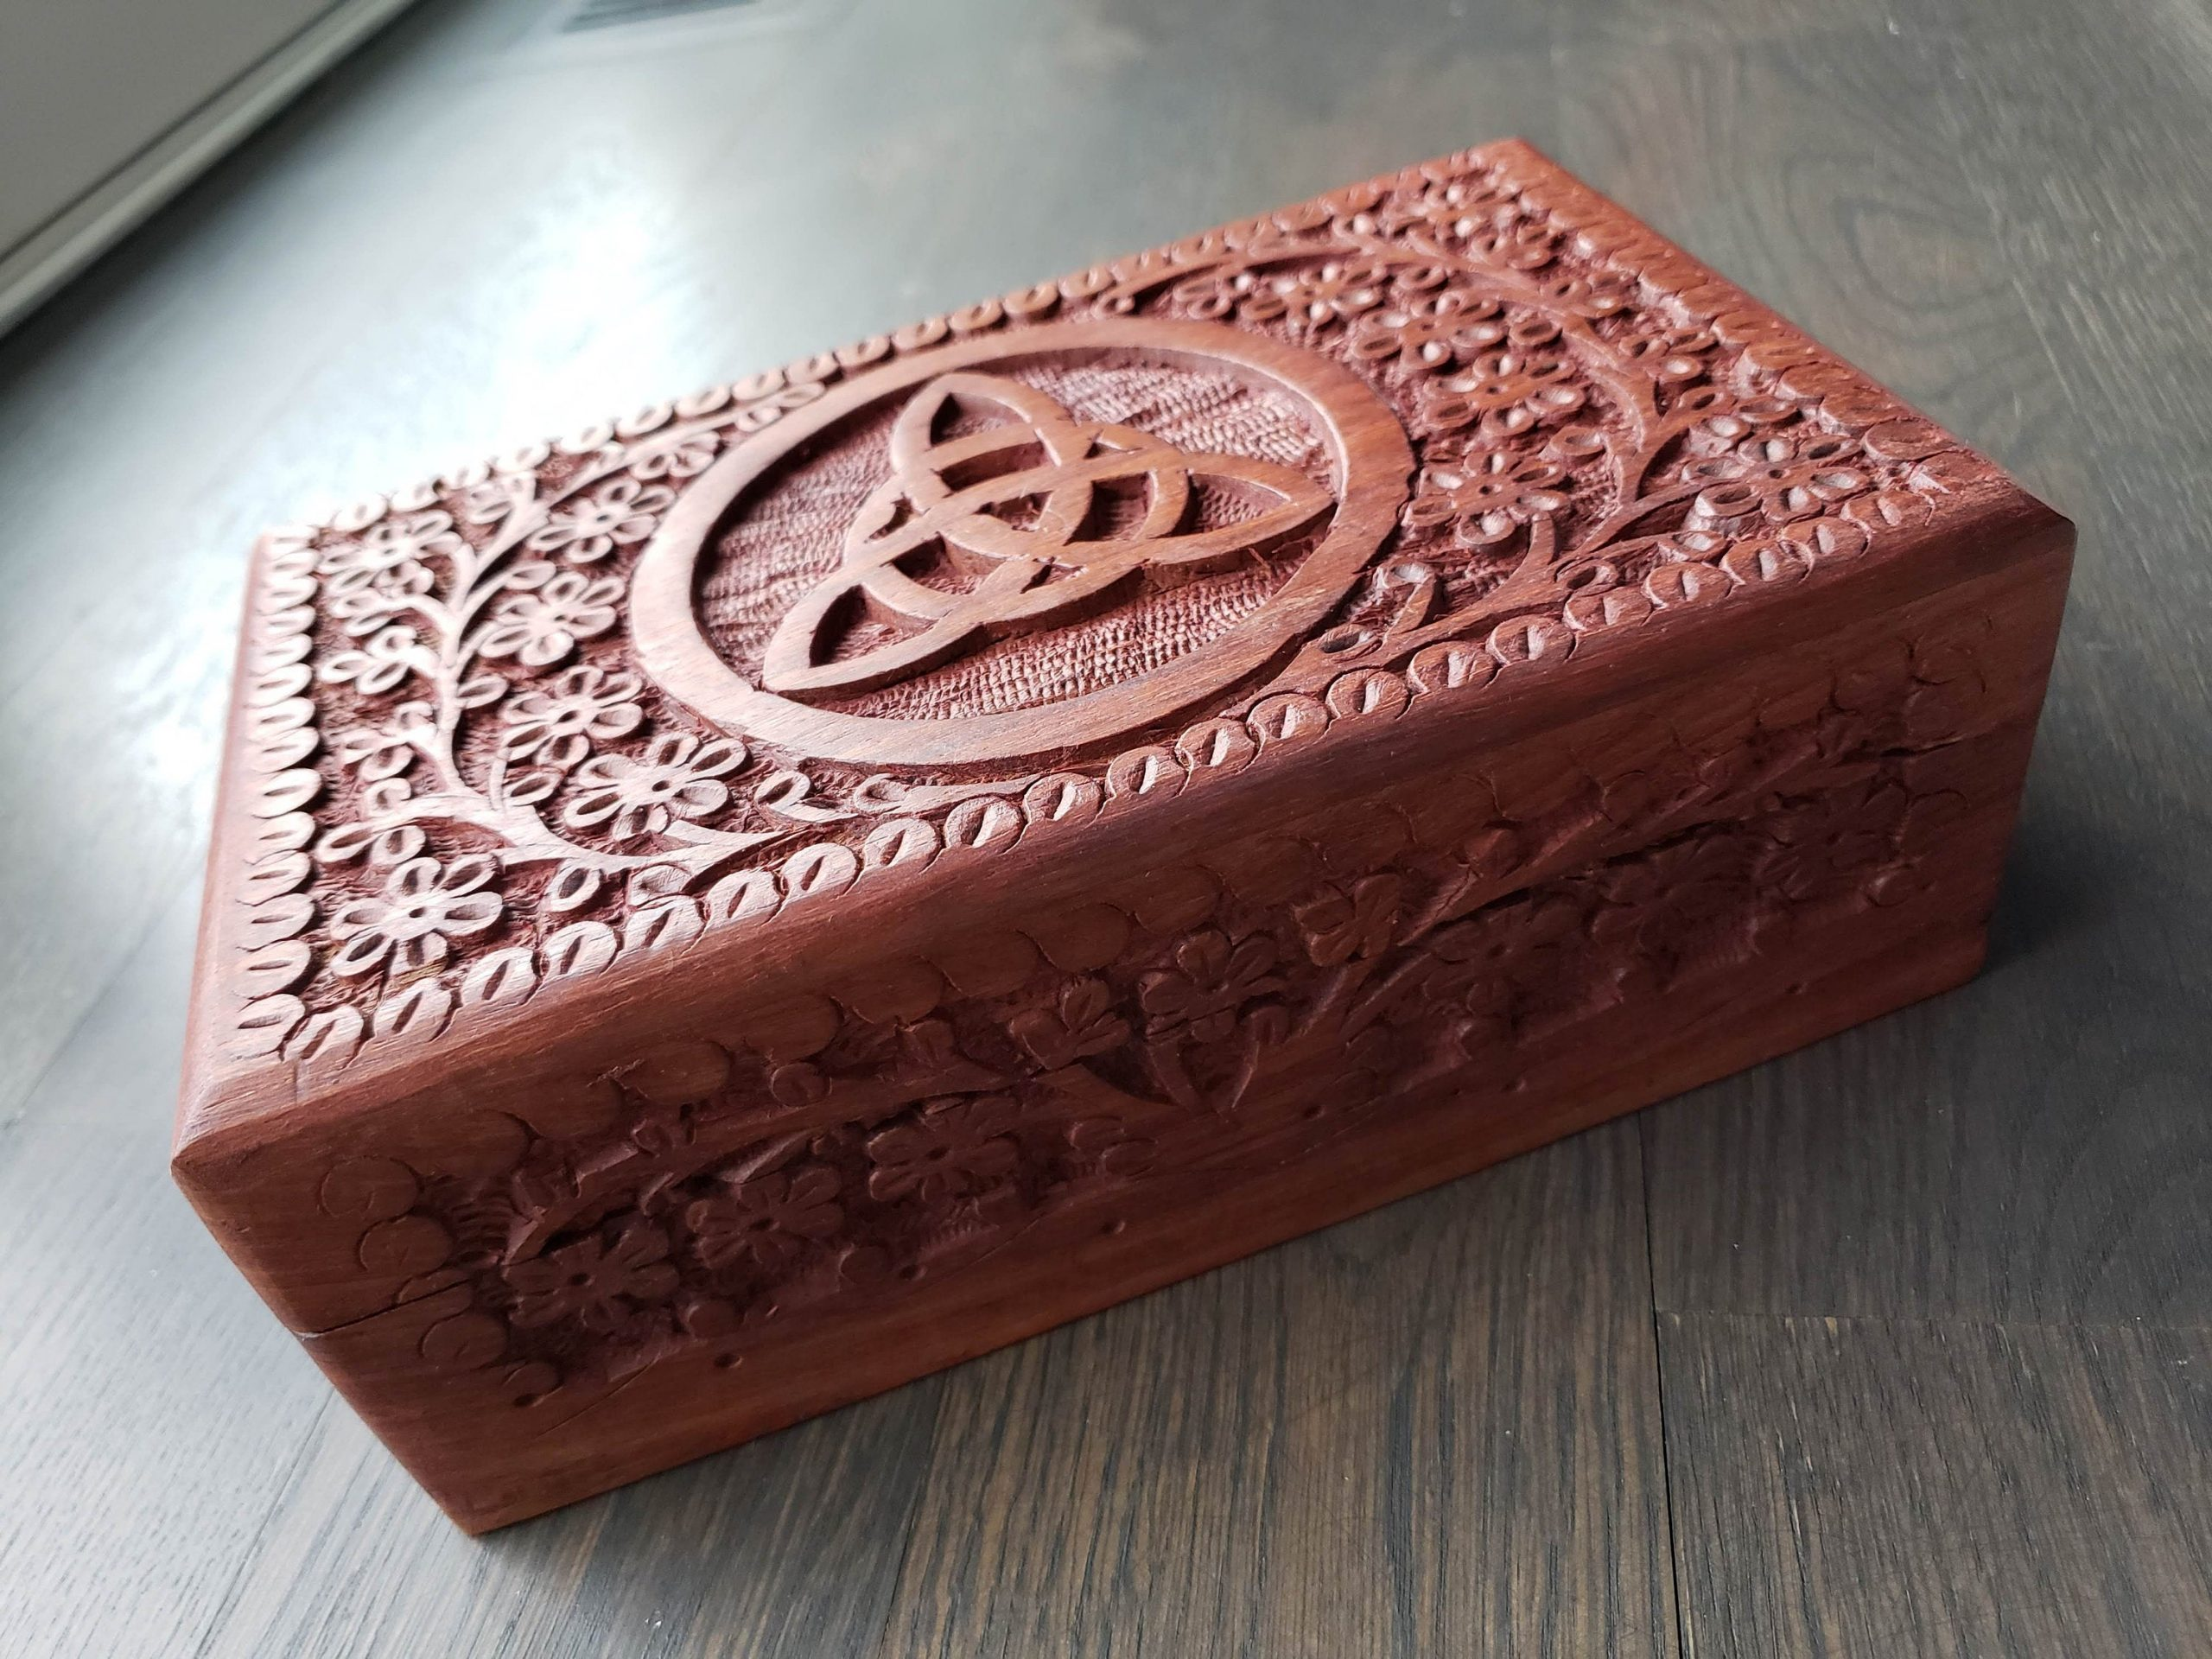 6 x 3 x 3.5 Rustic Wooden Keepsake Box with Celtic Carvings